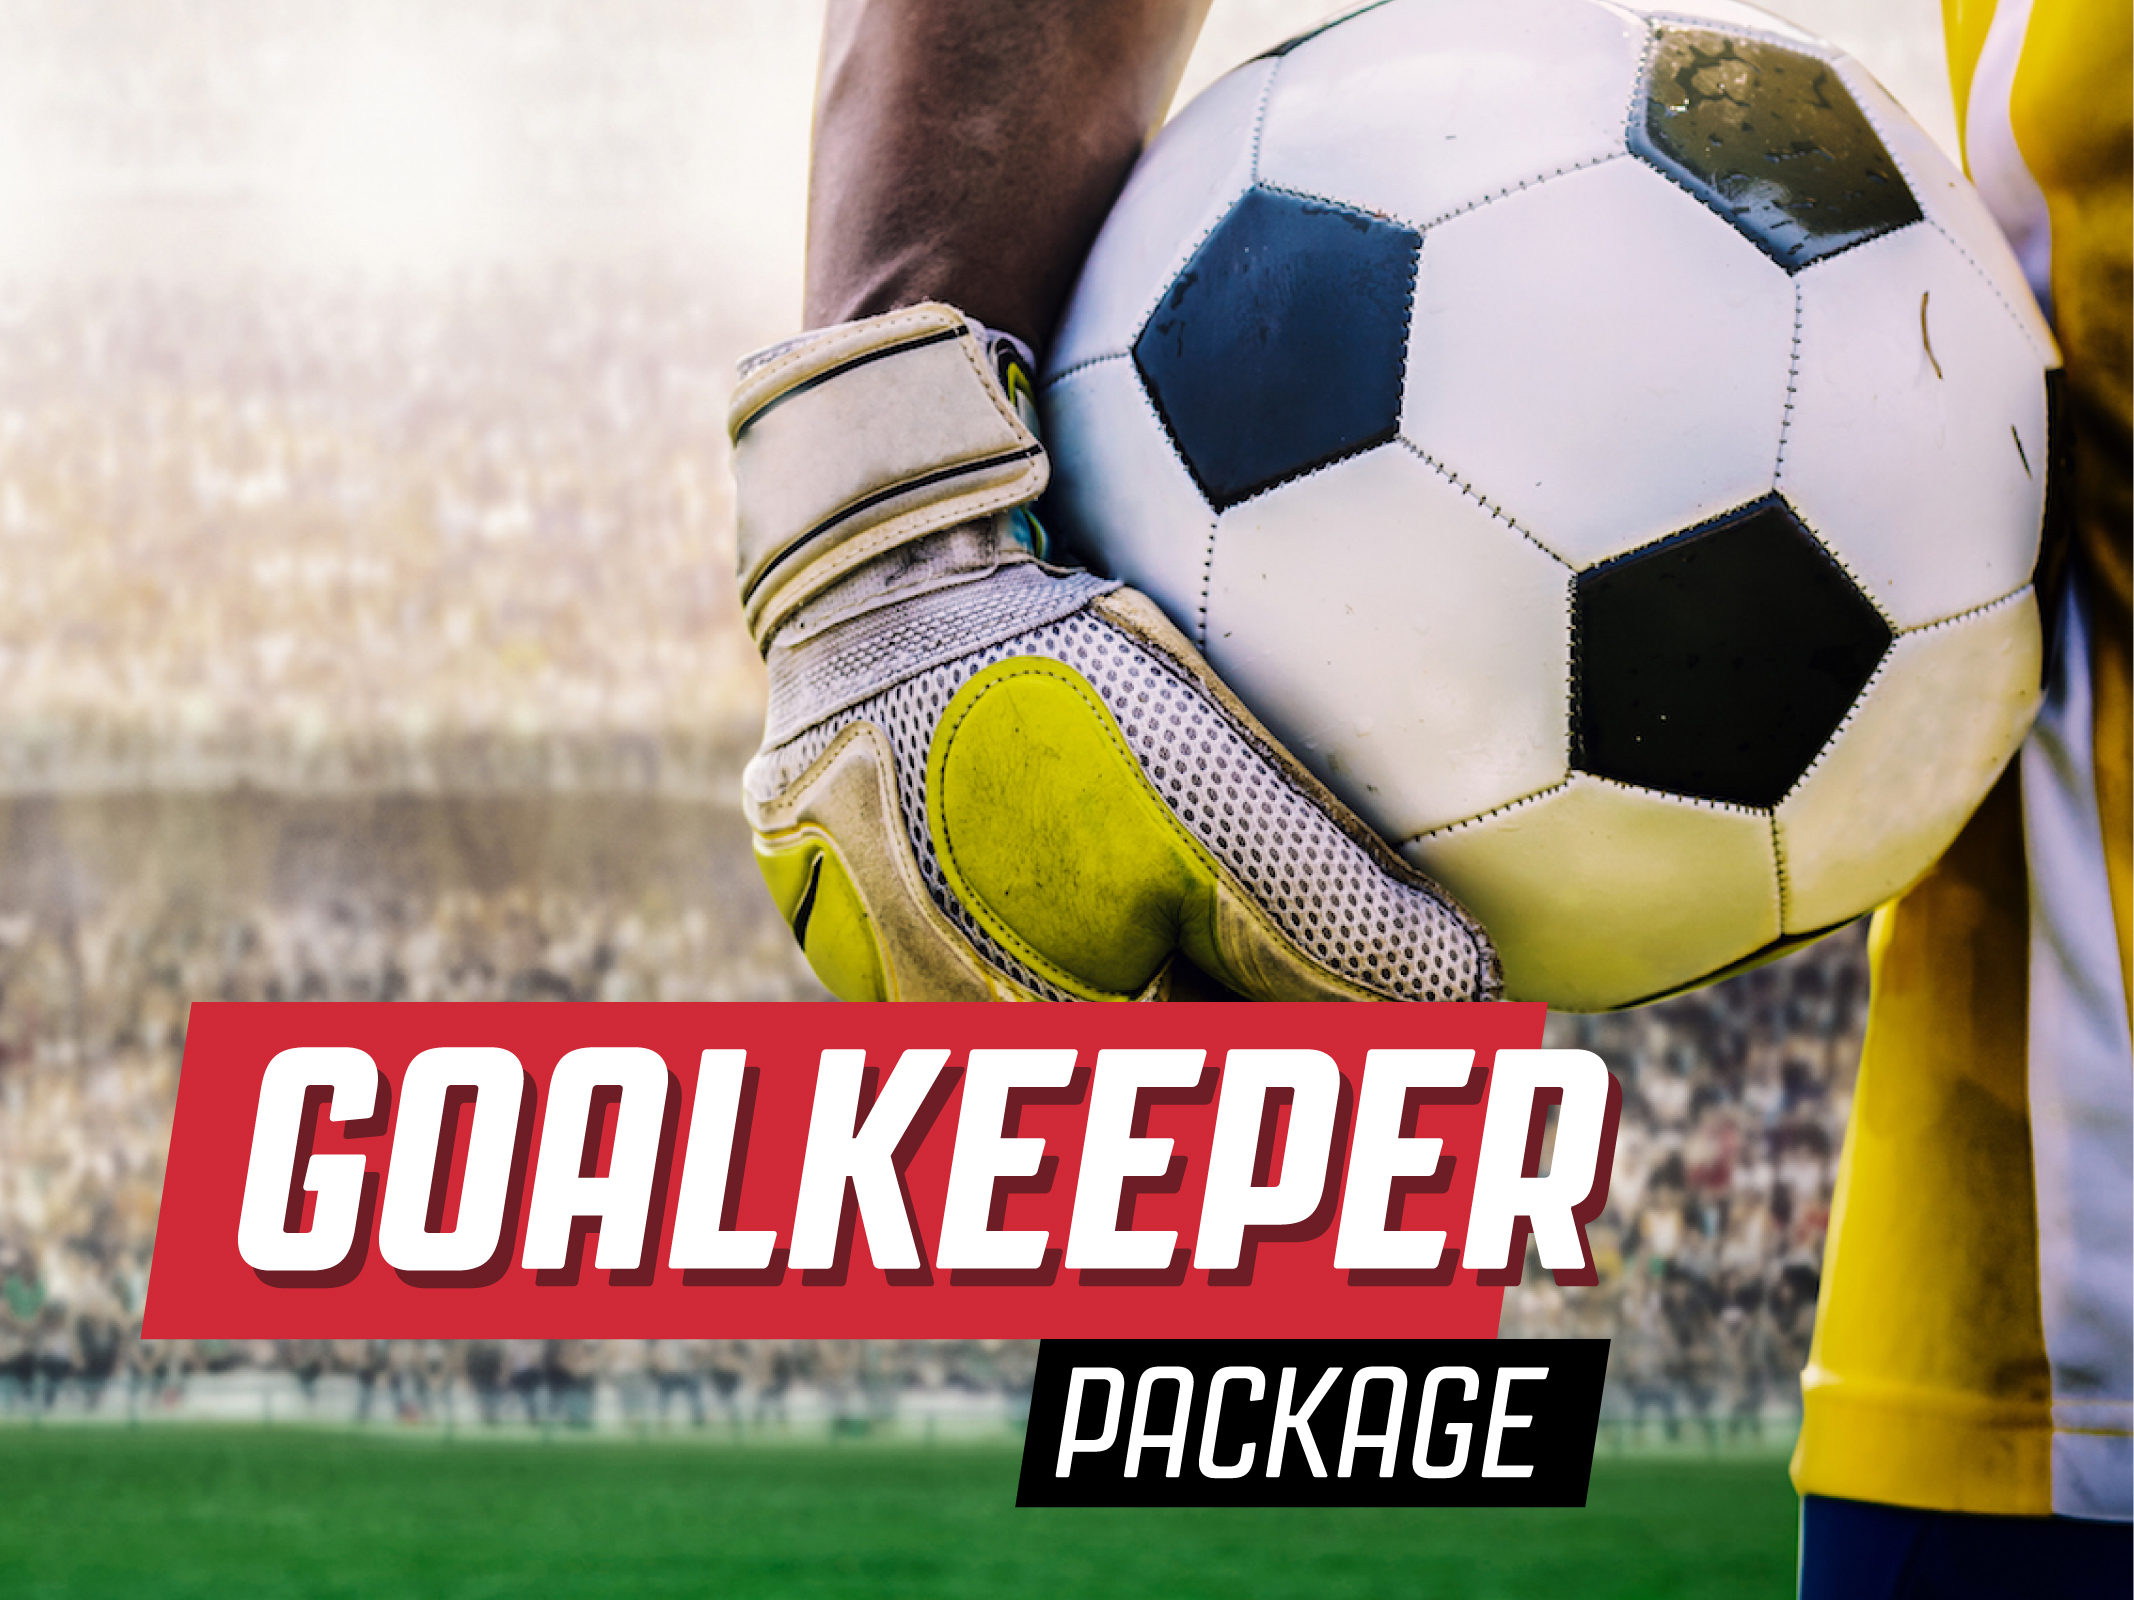 GOALKEEPER PACKAGE.jpg